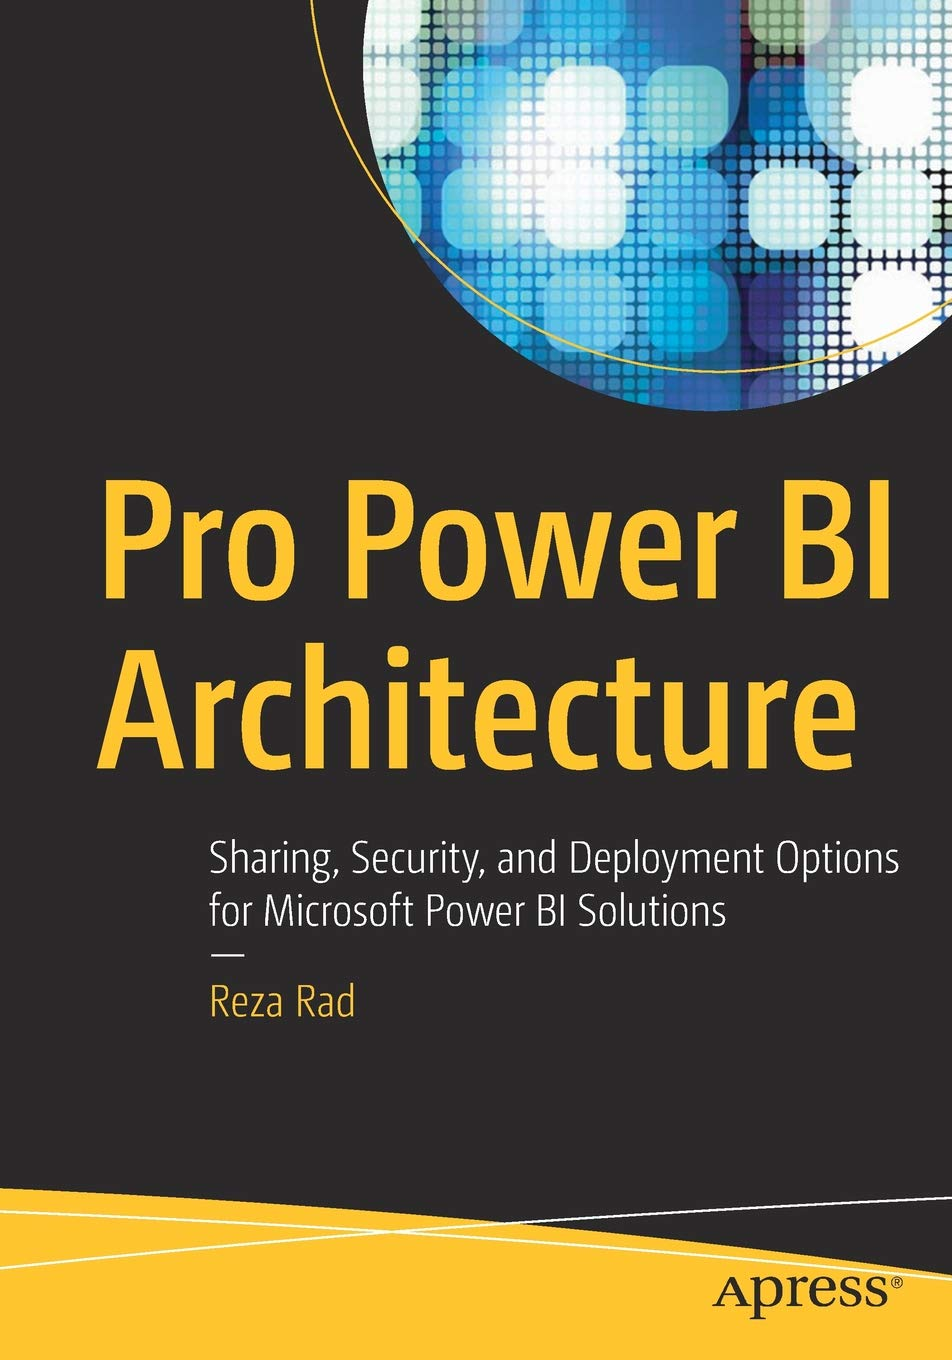 Pro Power BI Architecture: Sharing, Security, and Deployment Options for Microsoft Power BI Solutions por Reza Rad